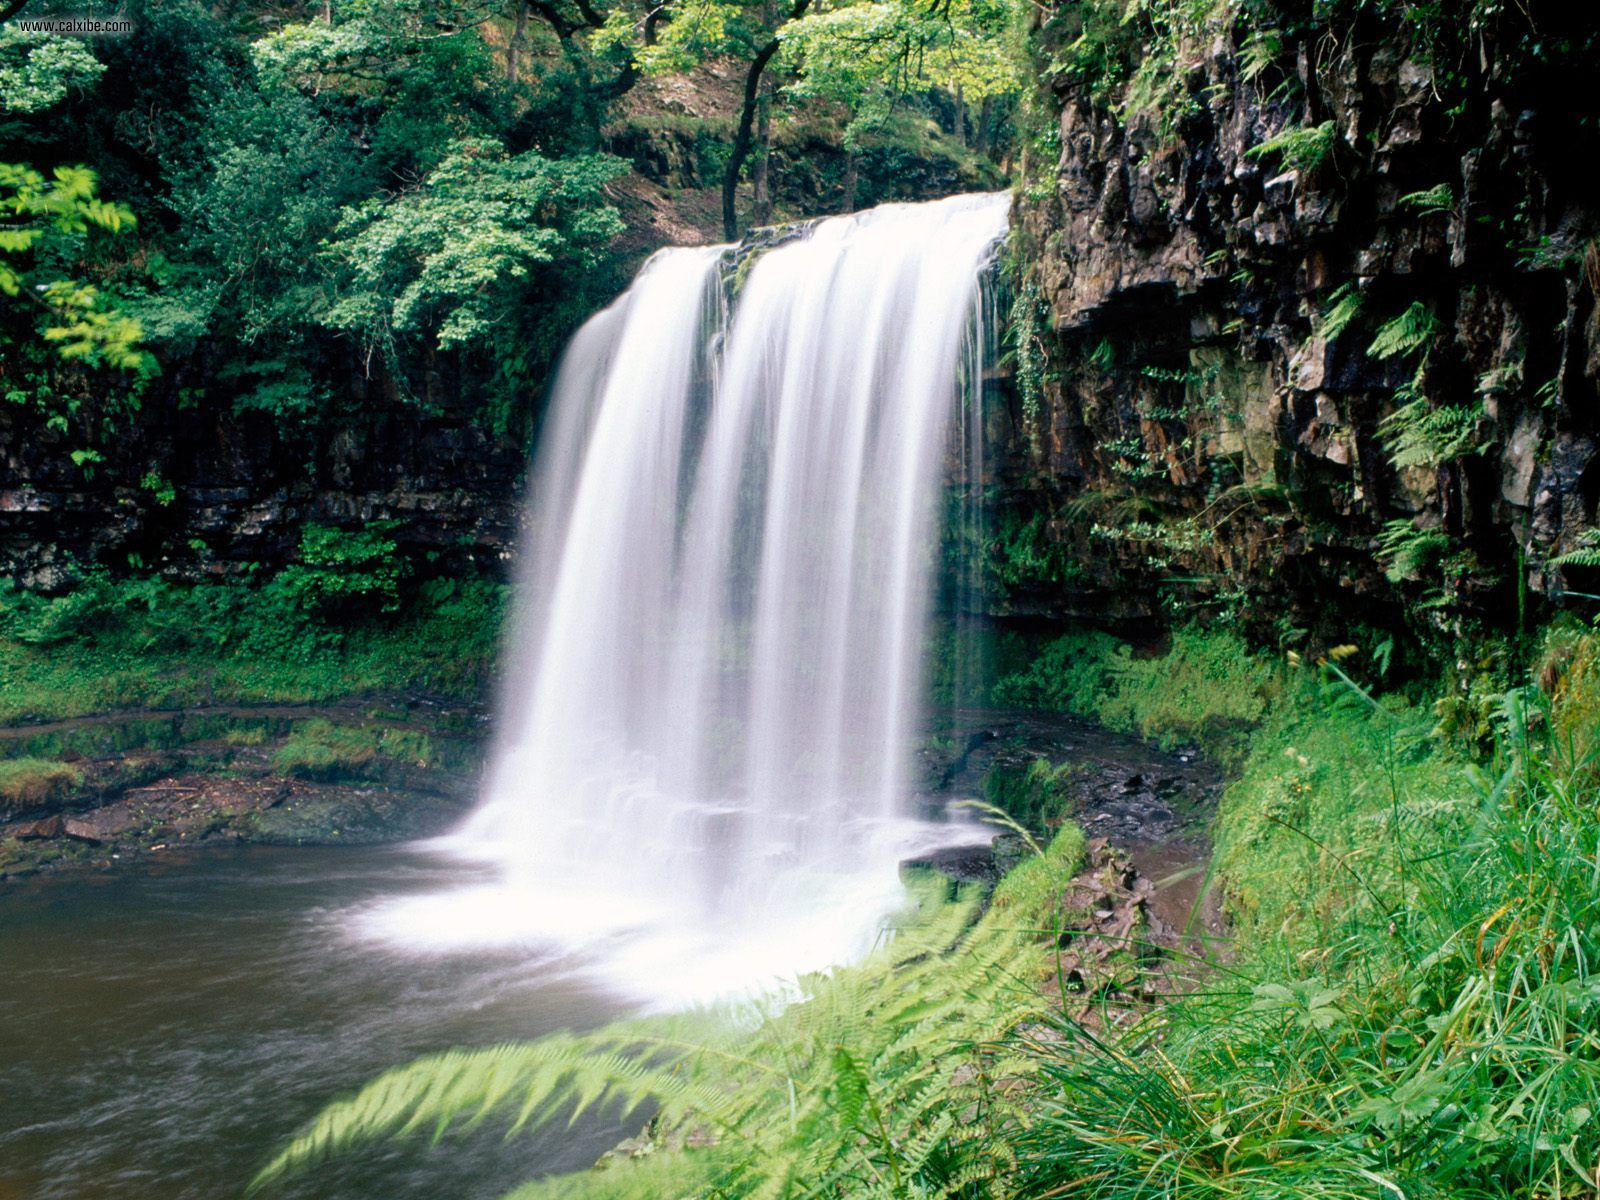 Brecon Beacons National Park South Wales, Nature: Brecon Beacons National Park South Wales, picture nr. 23093